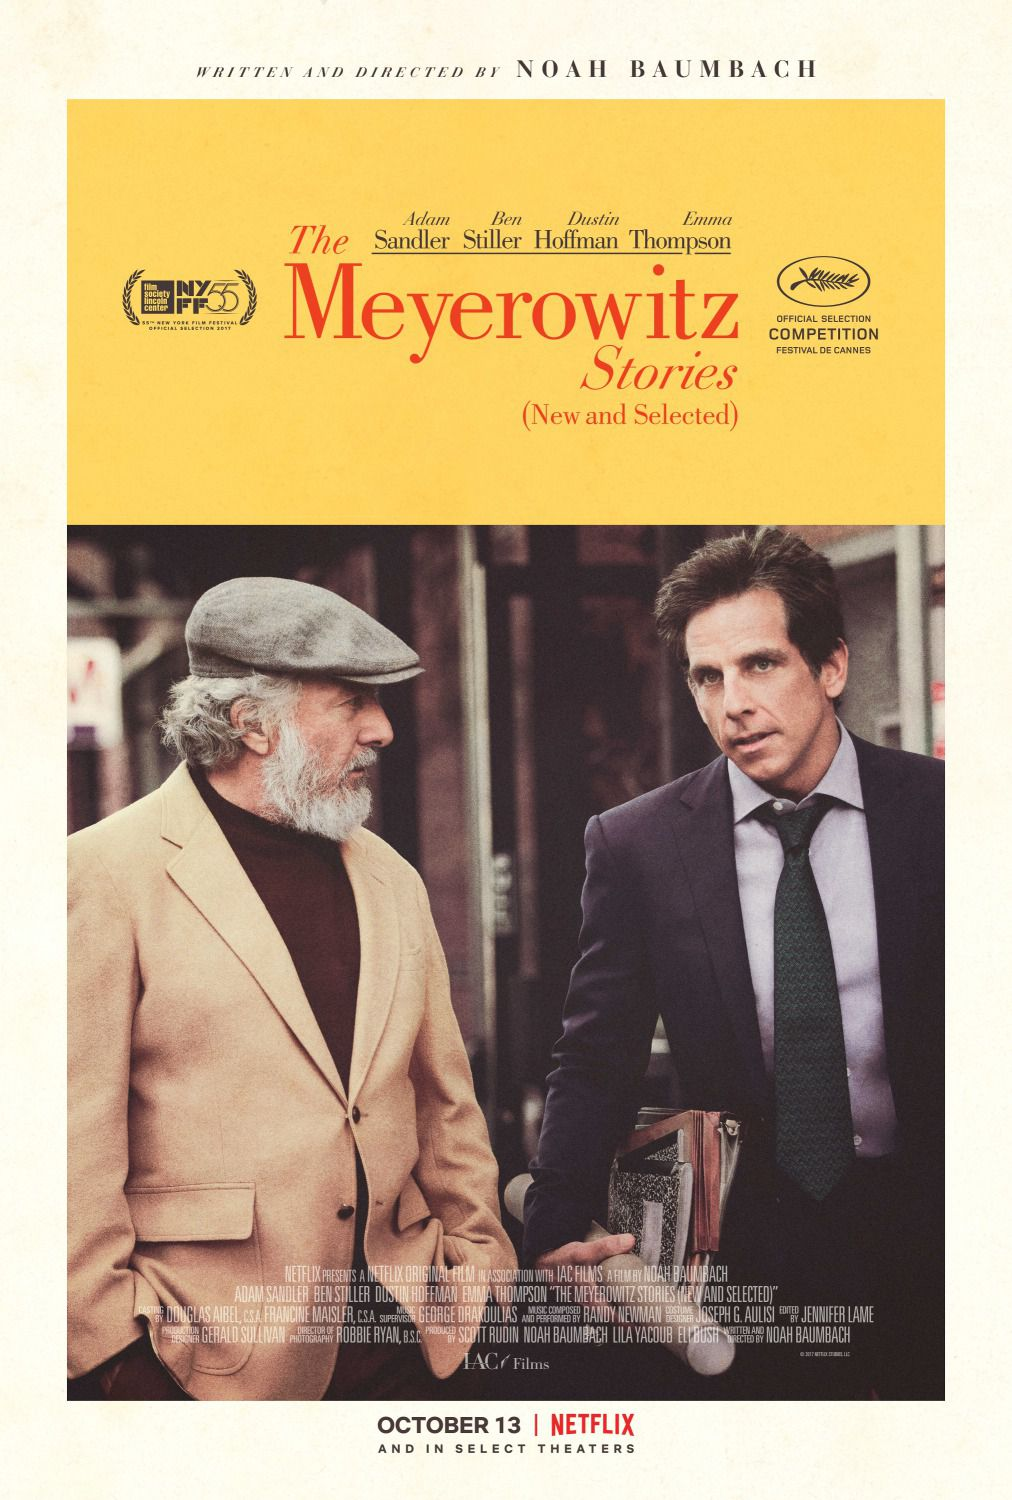 The Meyerowitz stories - Ben Stiller - Dustin Hoffman - film poster